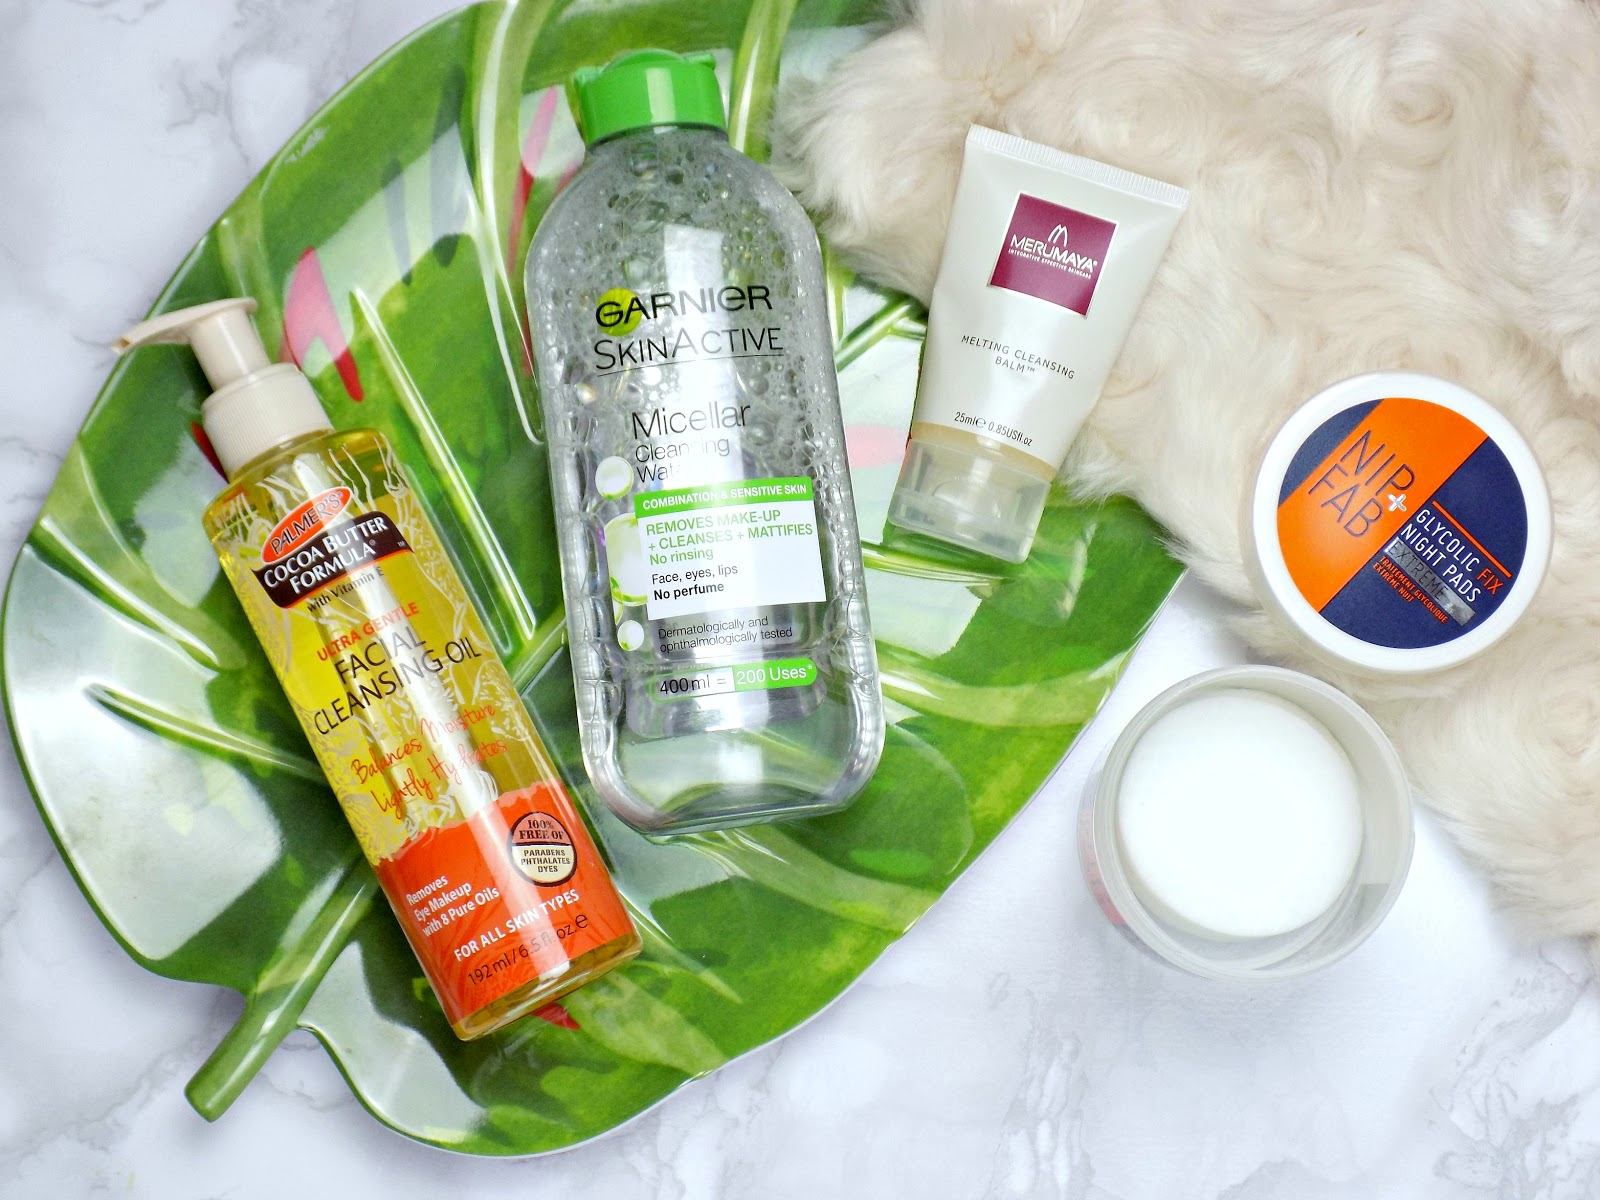 Night time cleansers, Palmer's Cleansing Facial Oil, Merumaya Melting Cleansing Blam